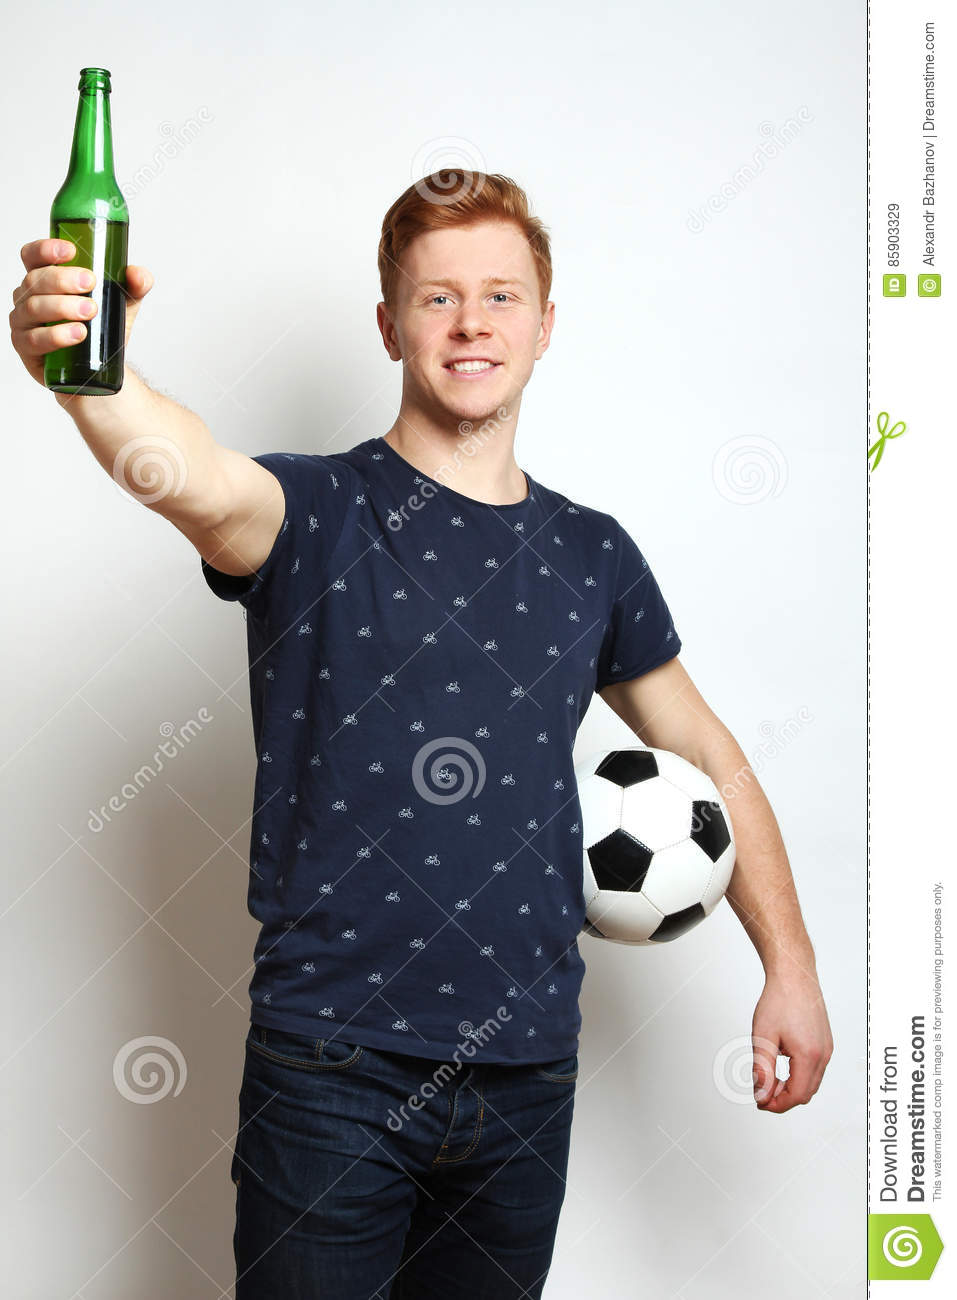 Football fan with beer